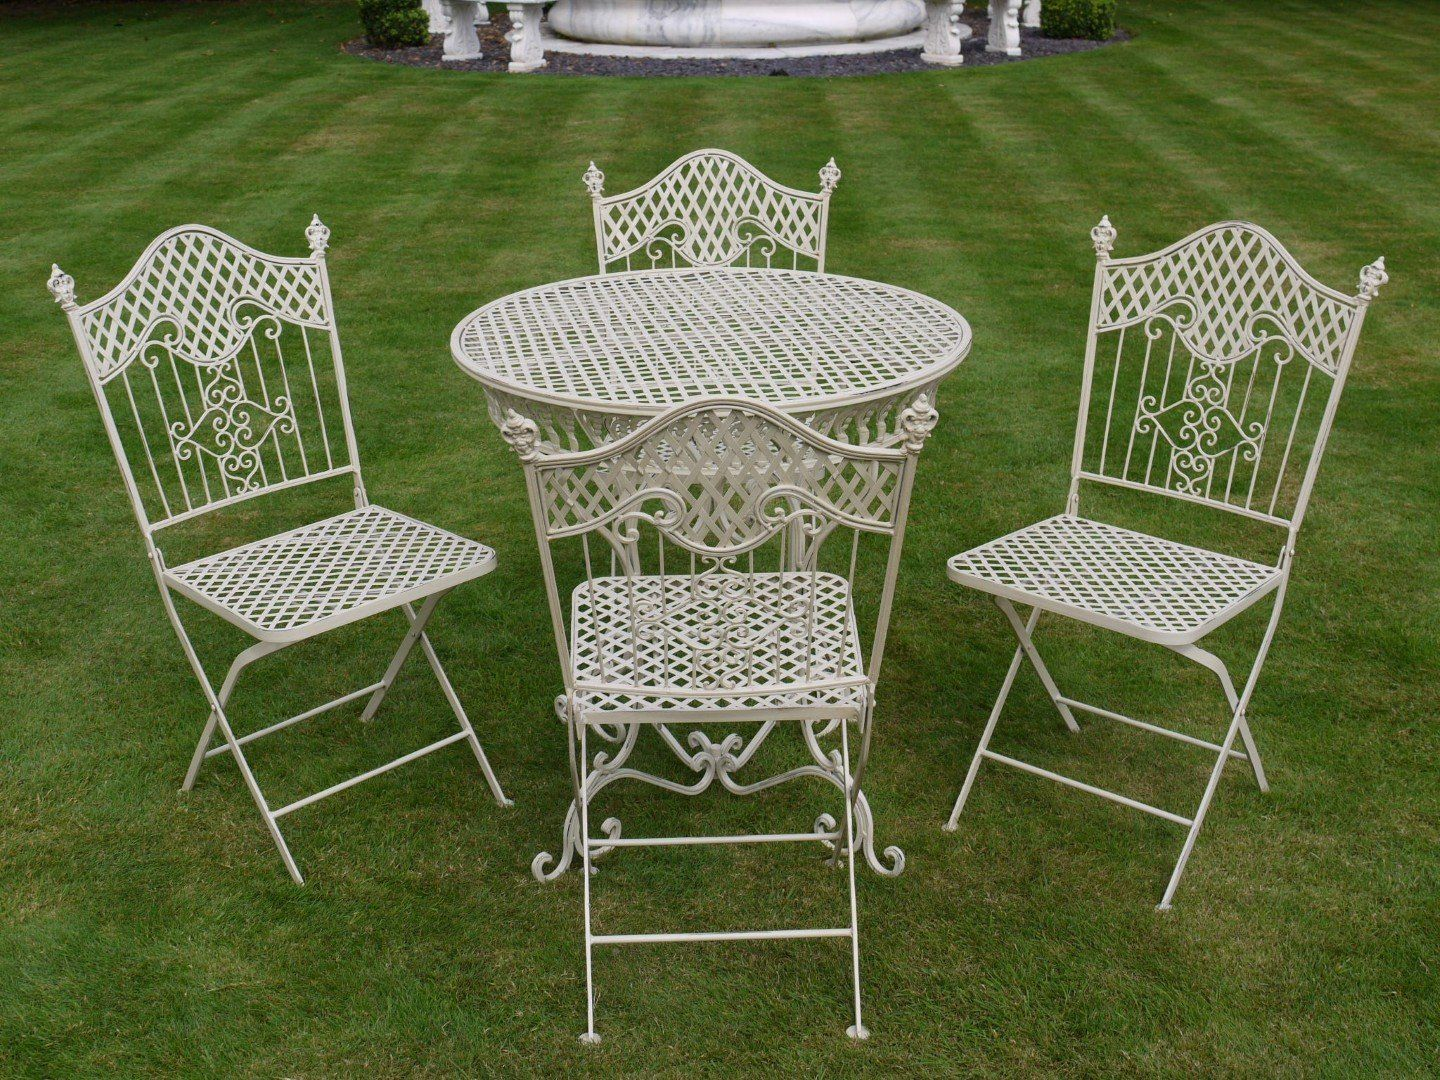 French Ornate Cream Wrought Iron Metal Garden Table And Chairs